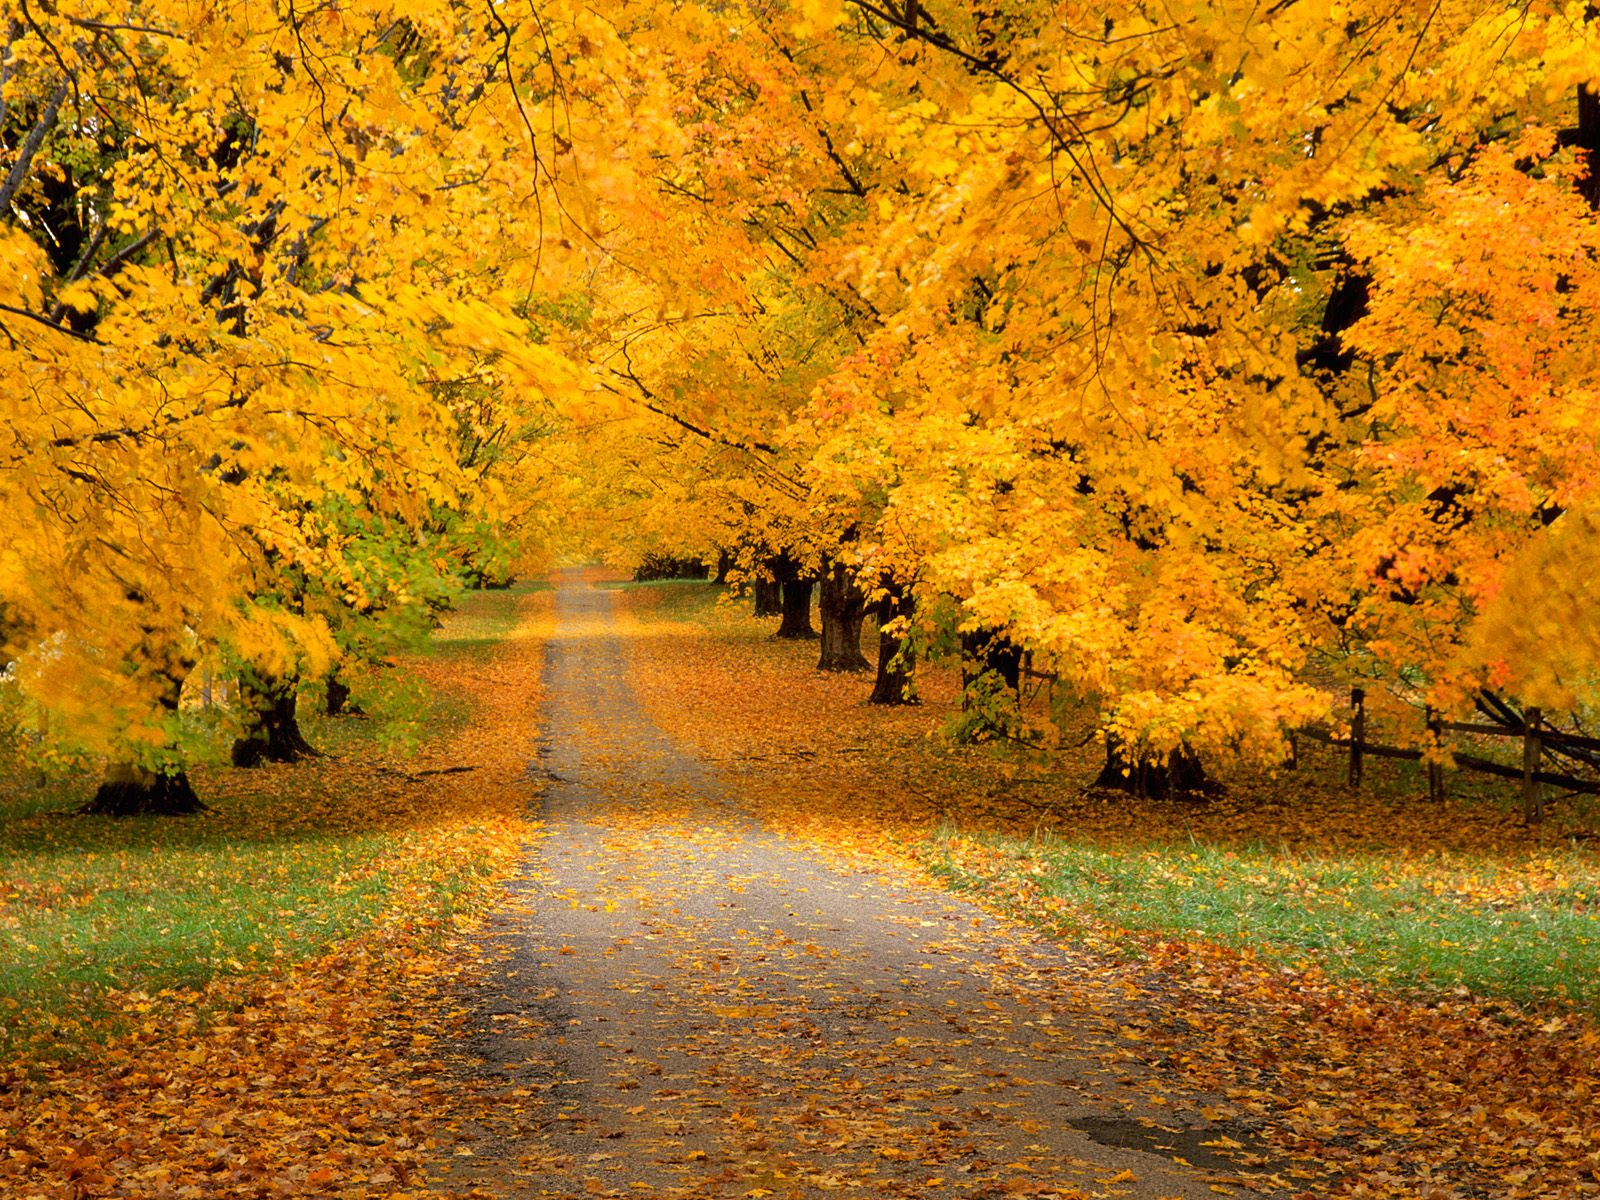 Autumn Covered Road   Cool Backgrounds and Wallpapers 1600x1200